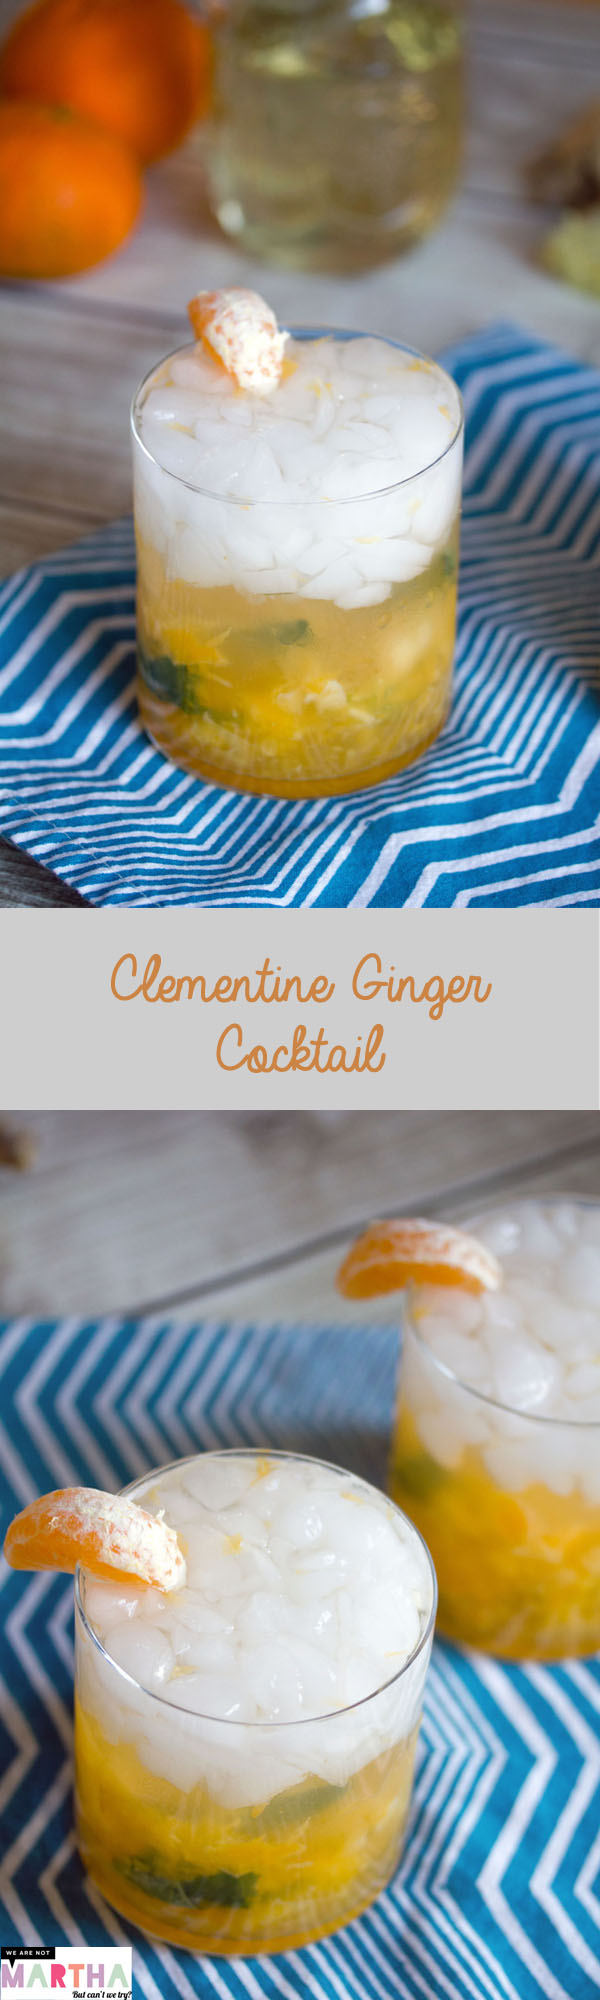 Clementine Ginger Cocktail -- Take advantage of winter citrus with ...